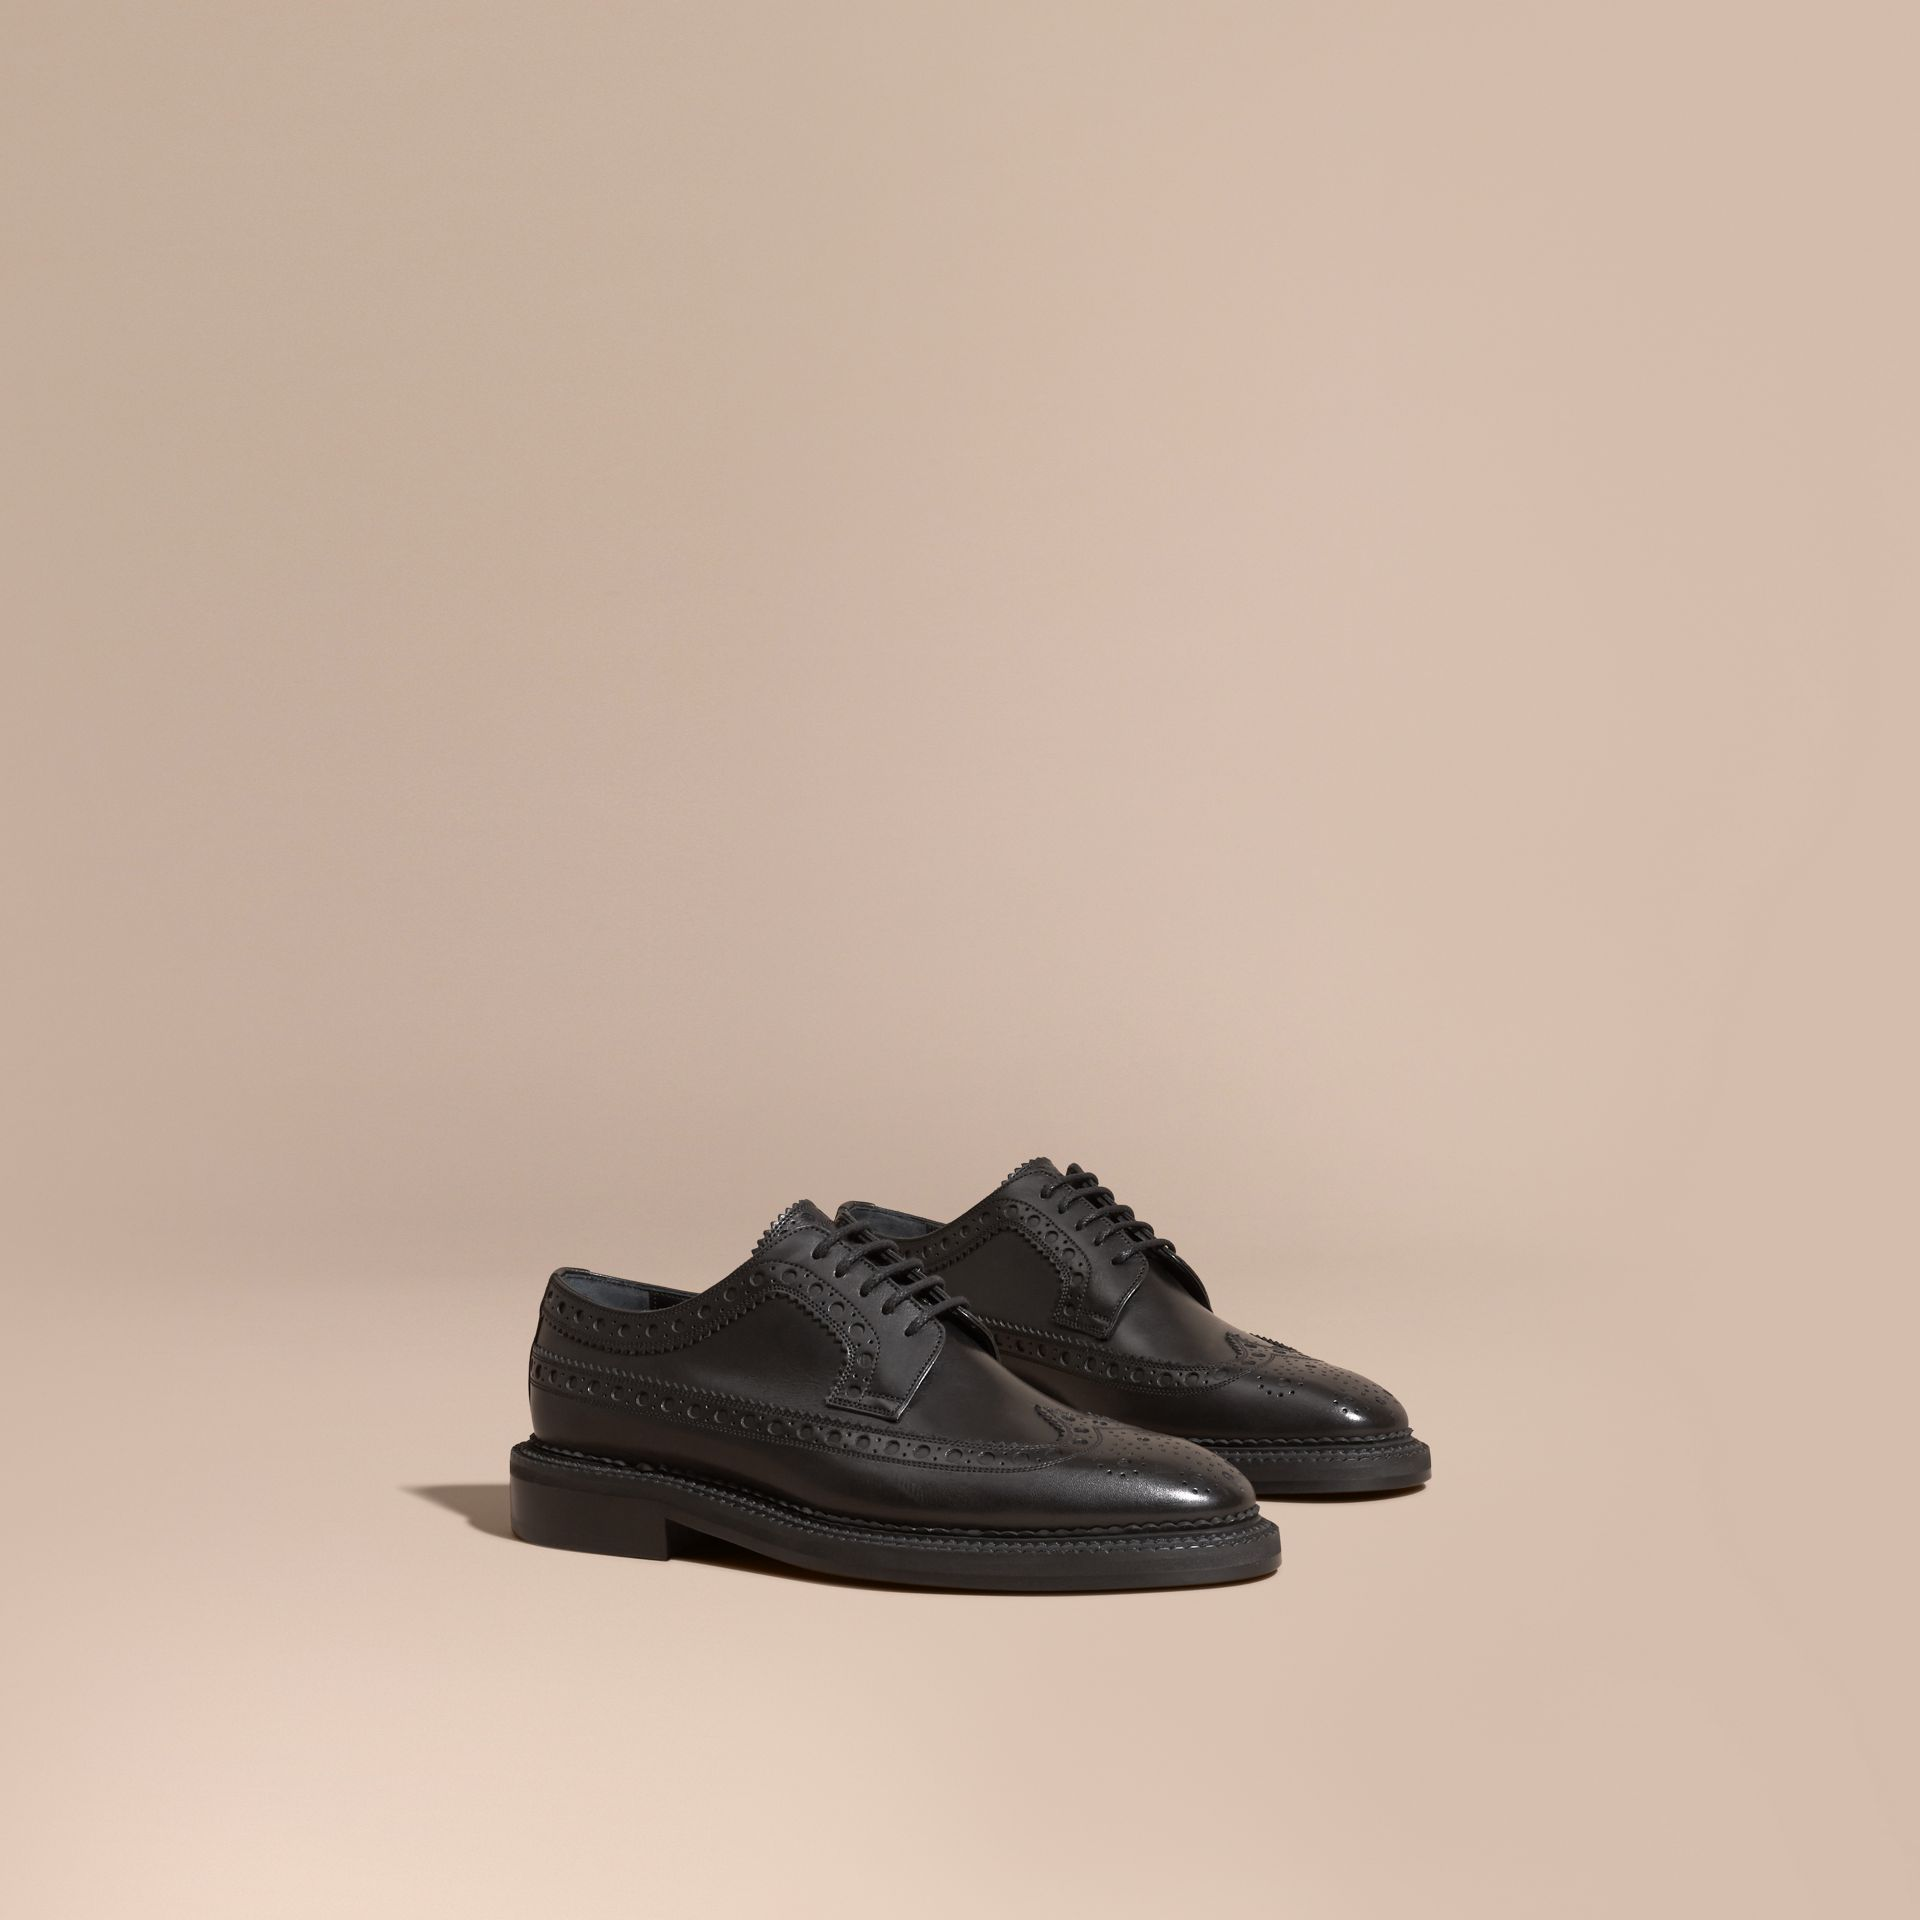 Leather Wingtip Brogues in Black - Men | Burberry Australia - gallery image 1